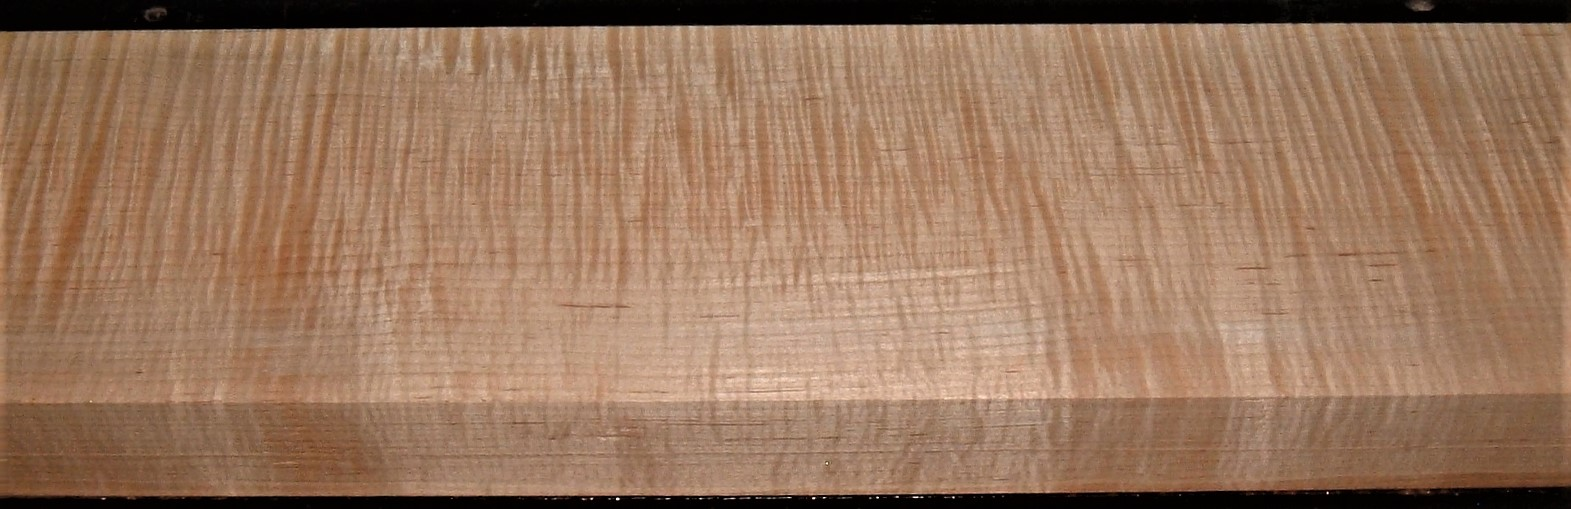 QS2011-38JK, 2-1/16x7x47, Quartersawn Curly Maple